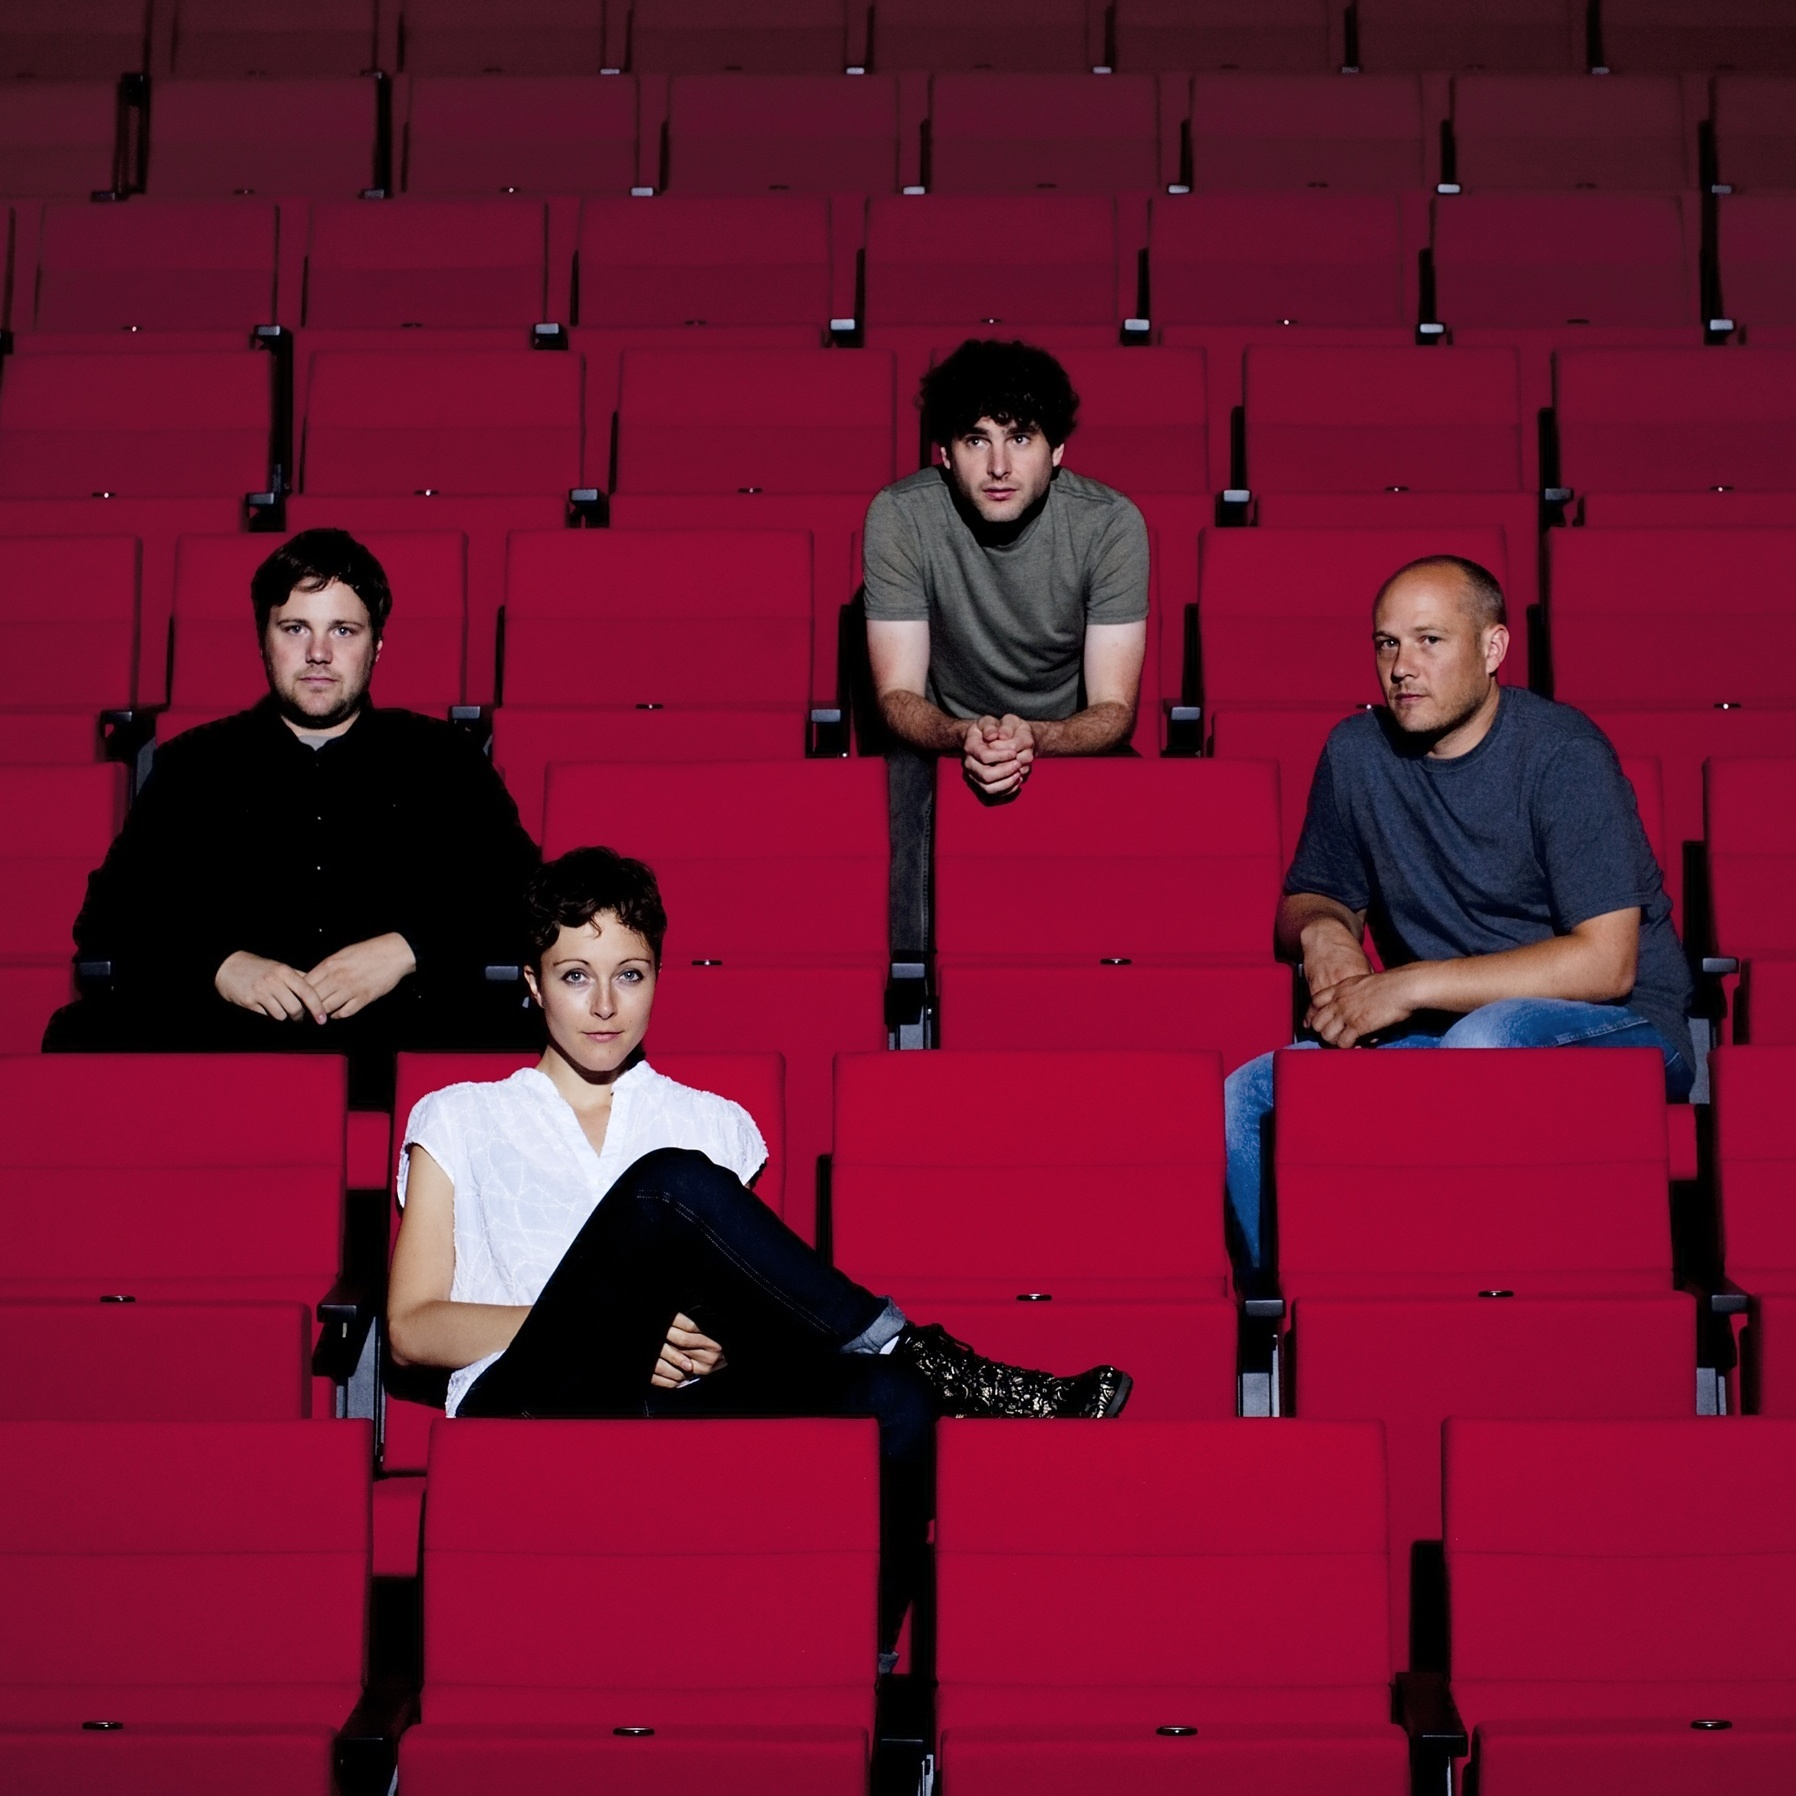 Hear the Minneapolis-based electro-pop group Polica webcast live in concert, from the 9:30 Club in Washington, D.C.